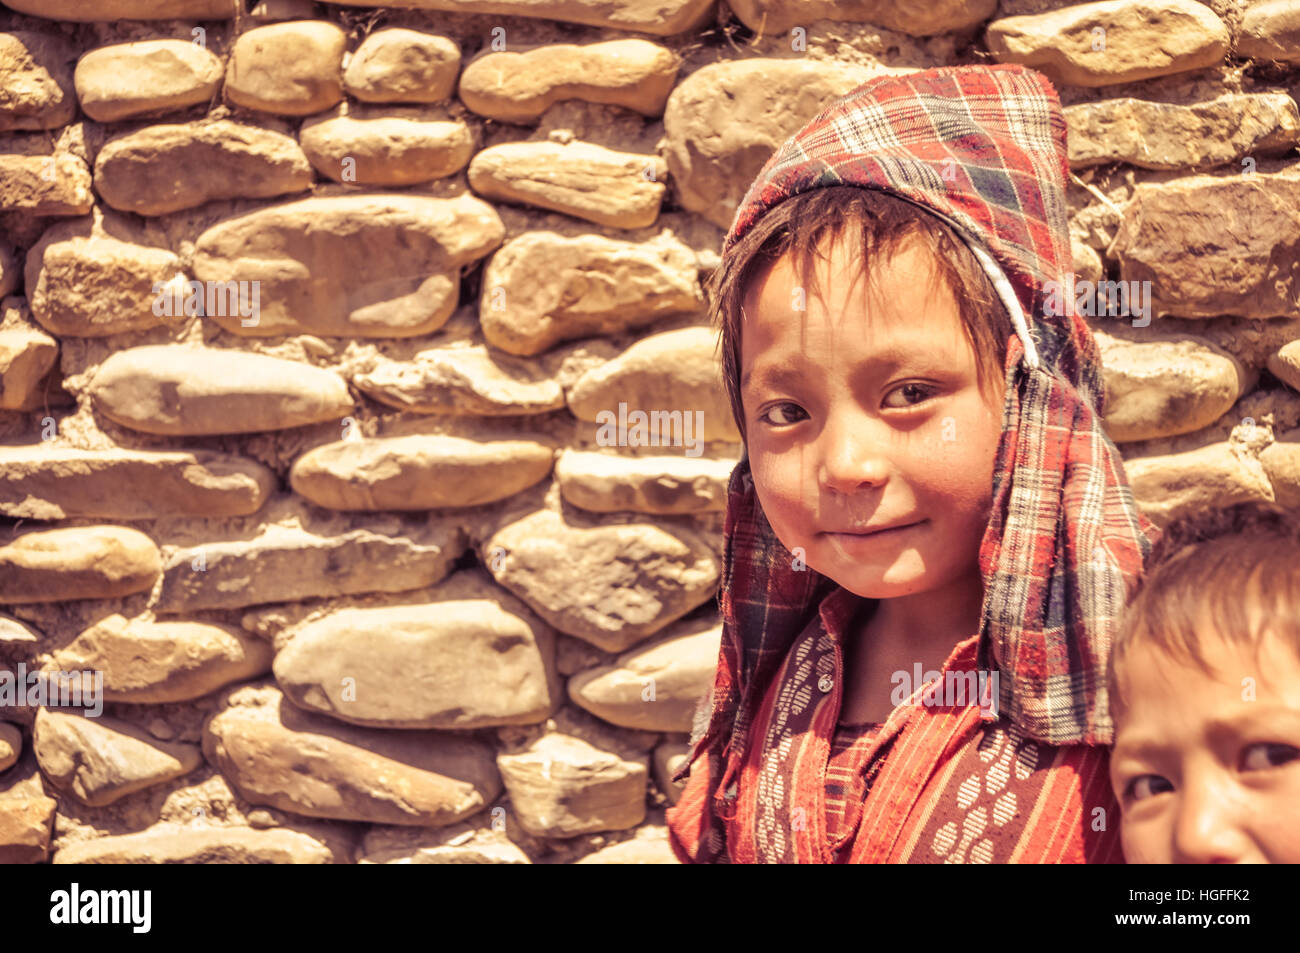 Dolpo, Nepal - circa June 2012: Small brown-haired boy with checked red headcloth and red shirt with nice brown - Stock Image